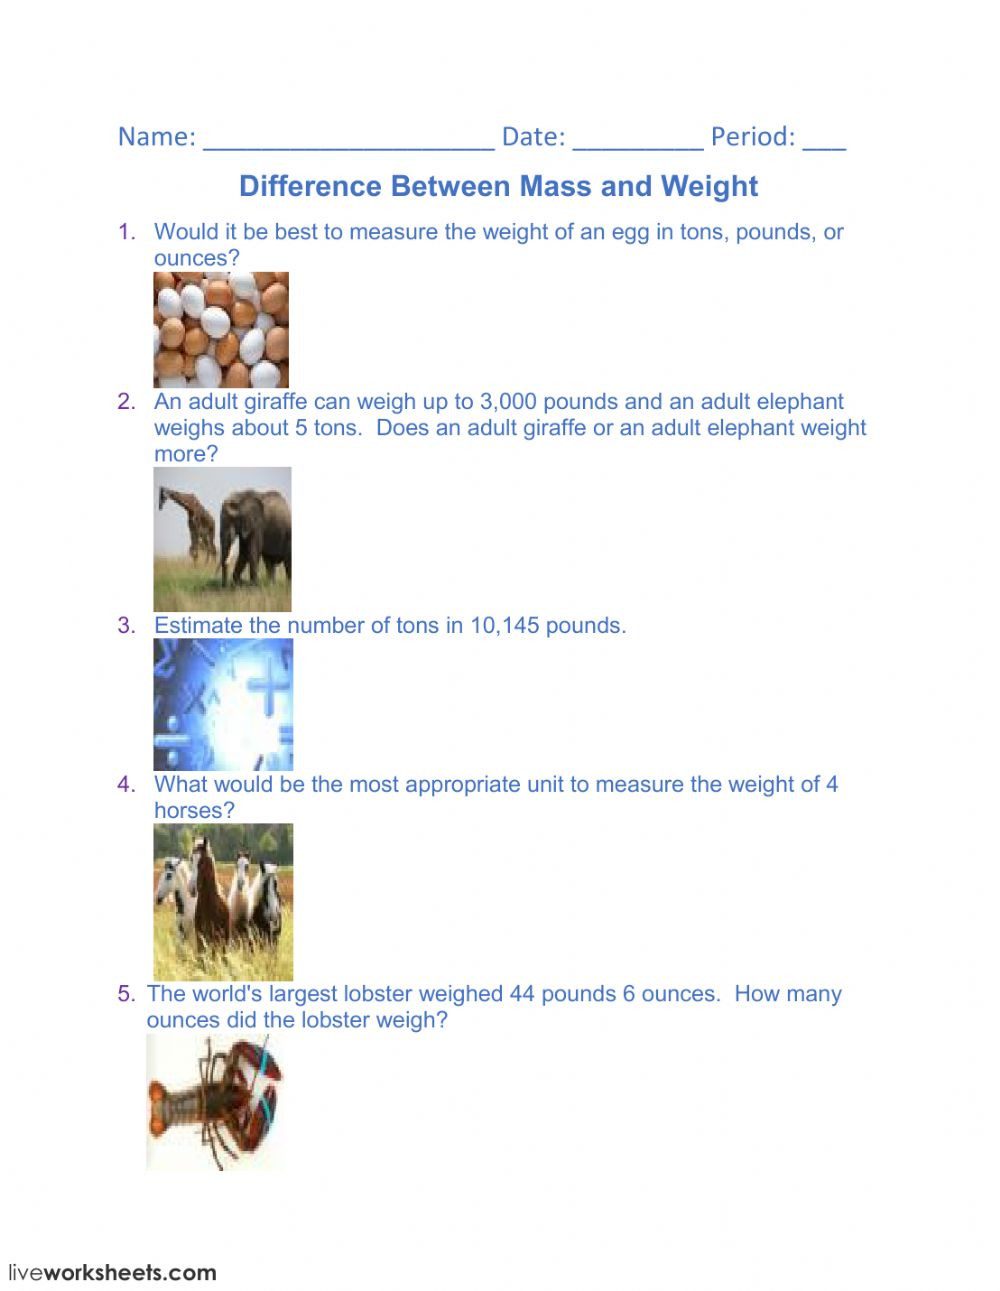 Mass and Weight Worksheet Difference Between Mass and Weight Interactive Worksheet